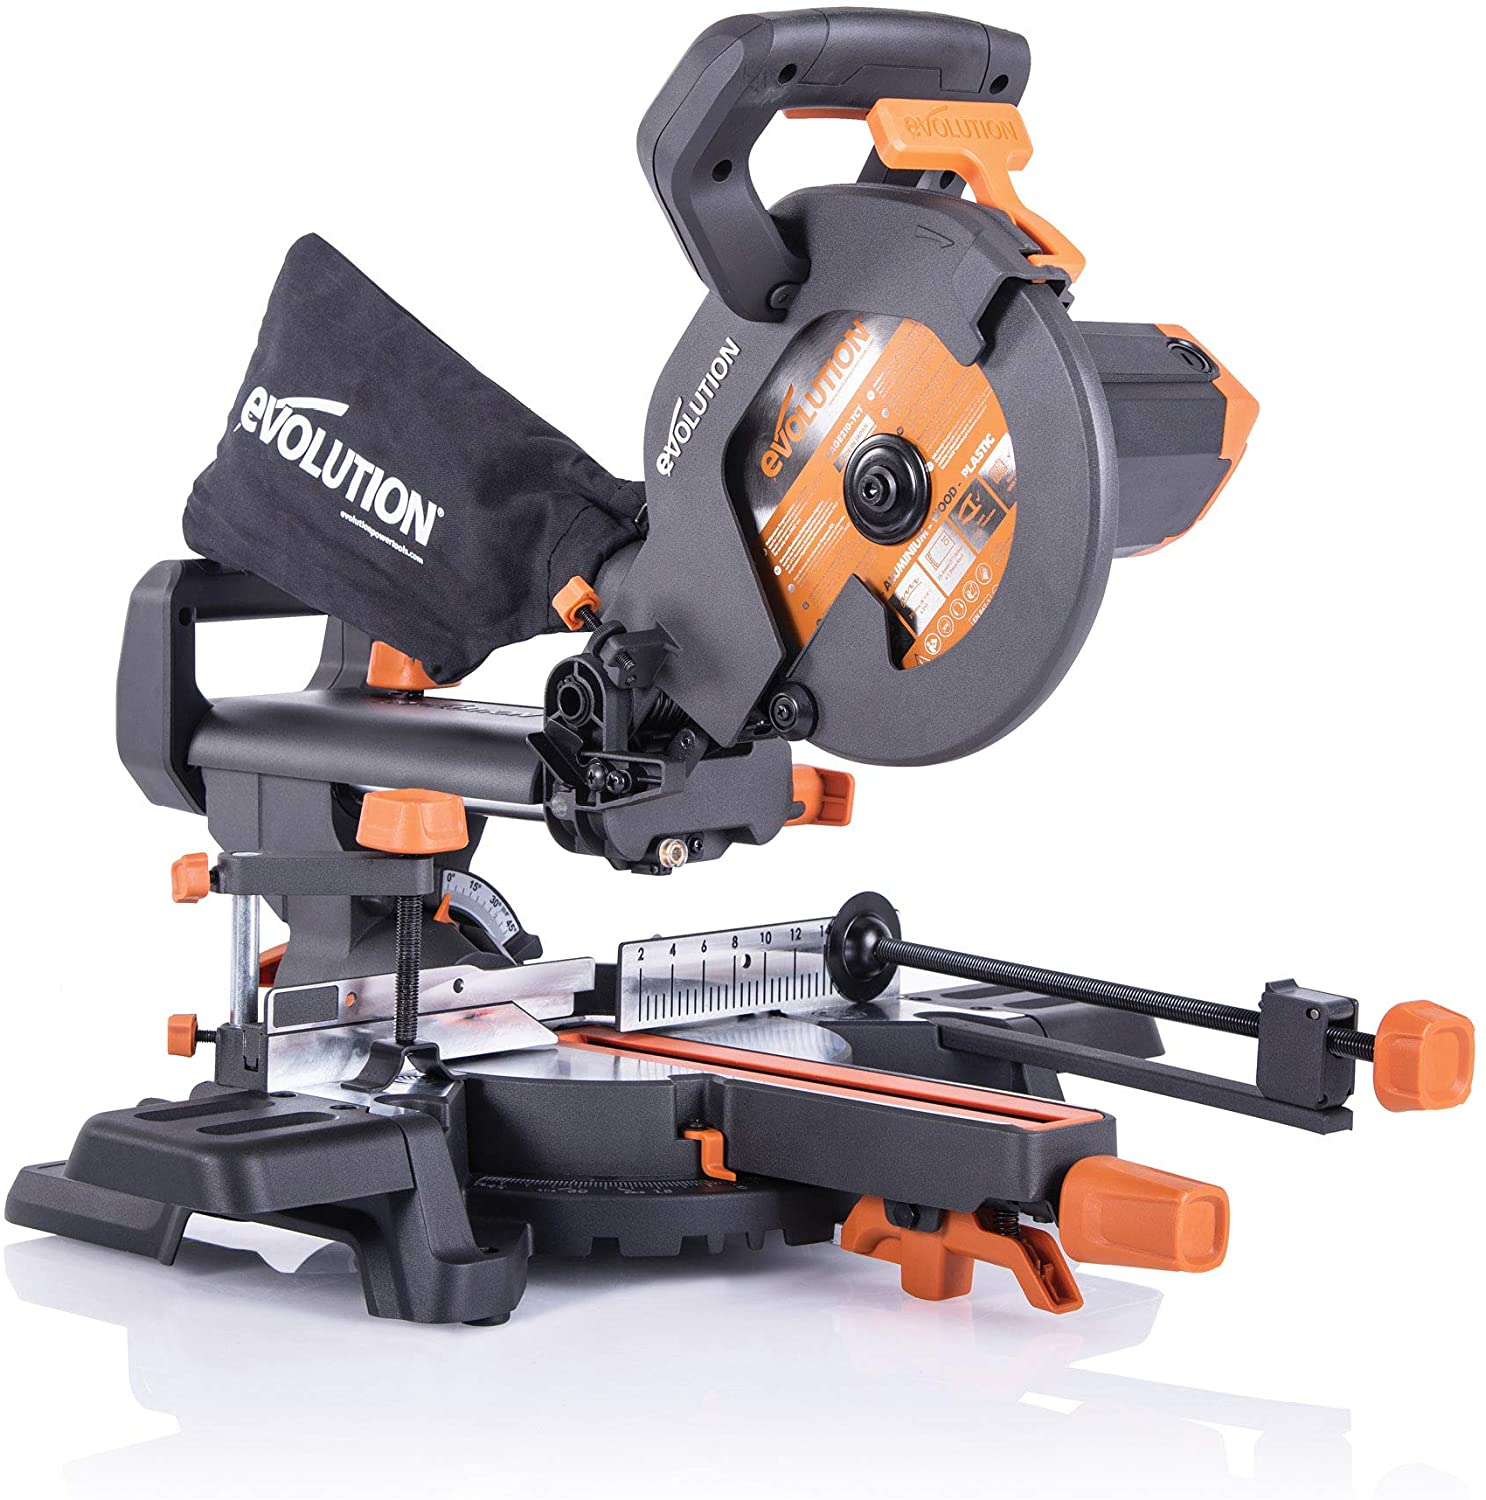 Evolution power tools R210 SMS